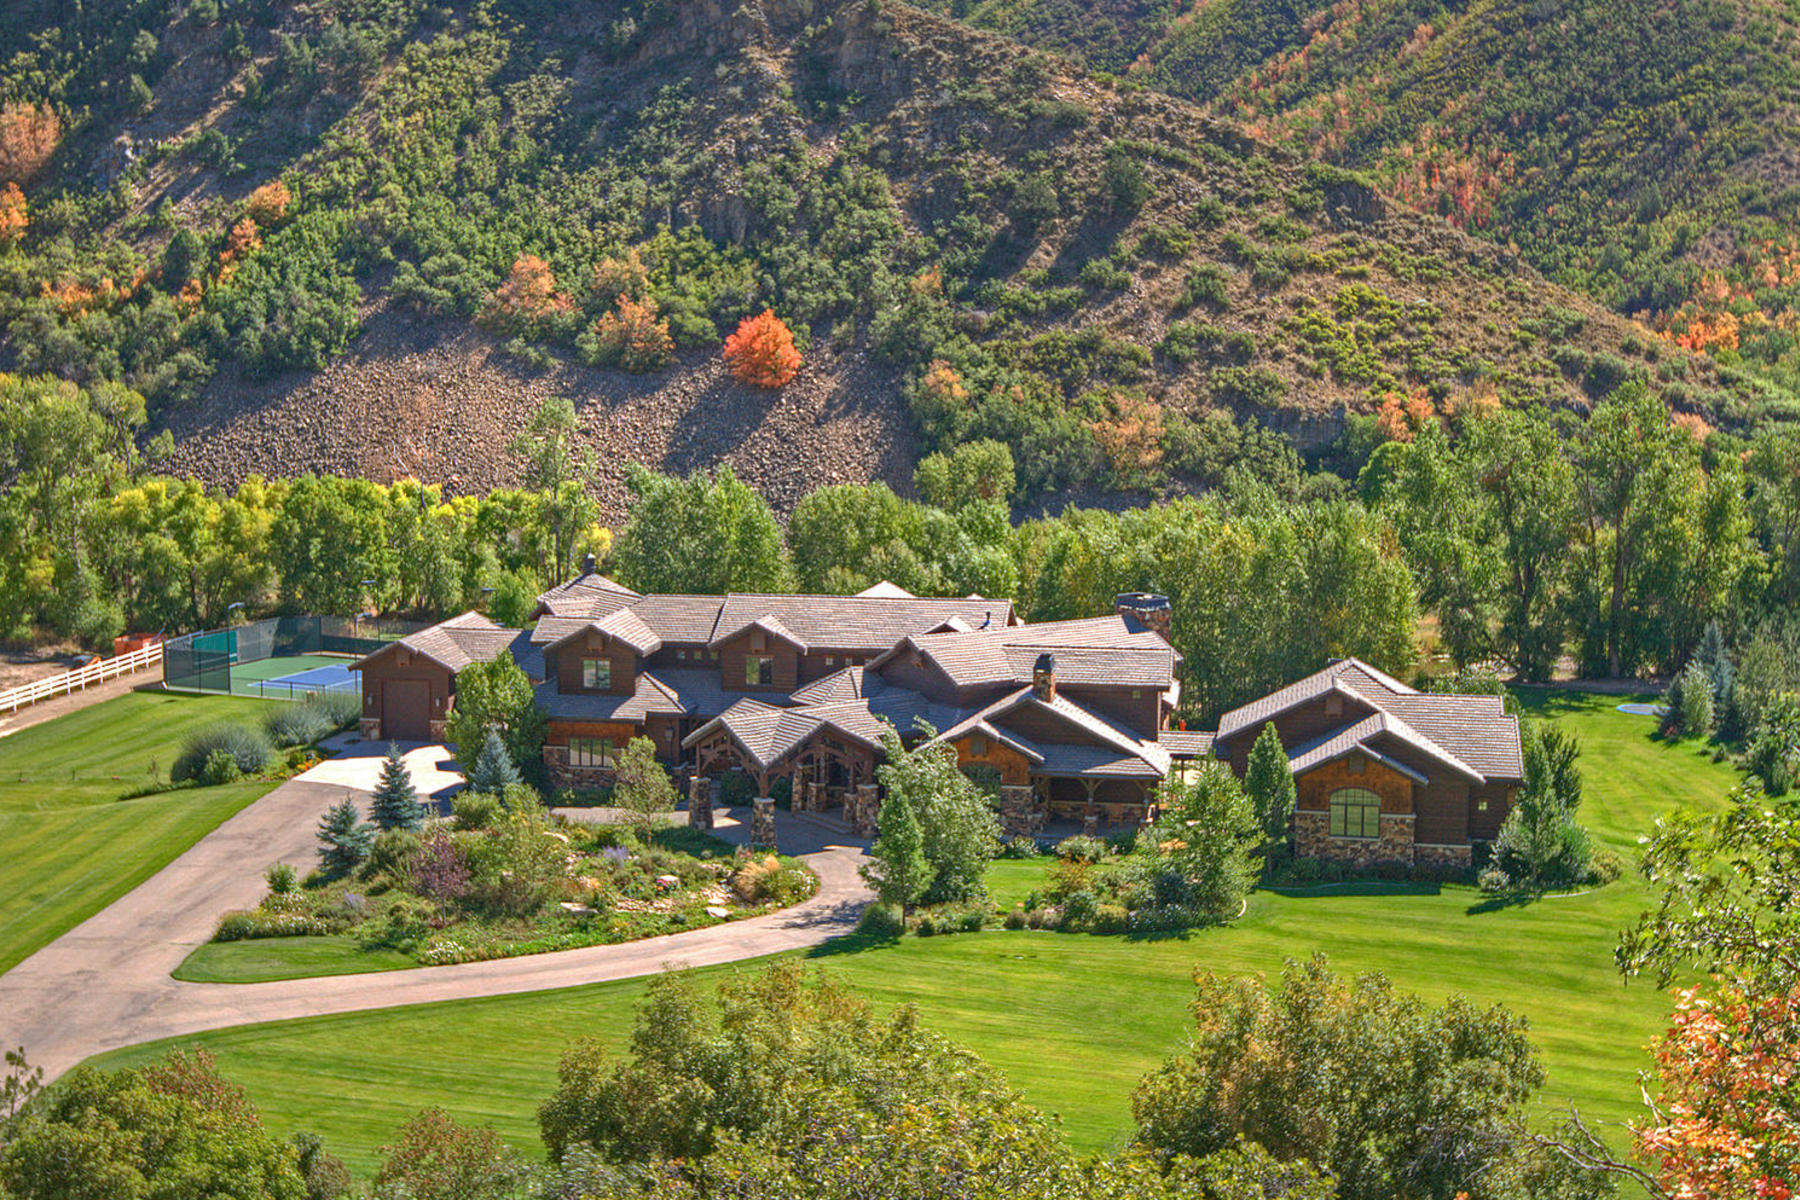 Maison unifamiliale pour l Vente à Incredible Estate in Hobble Creek Canyon 887 Hobble Creek Canyon Rd Springville, Utah, 84663 États-Unis